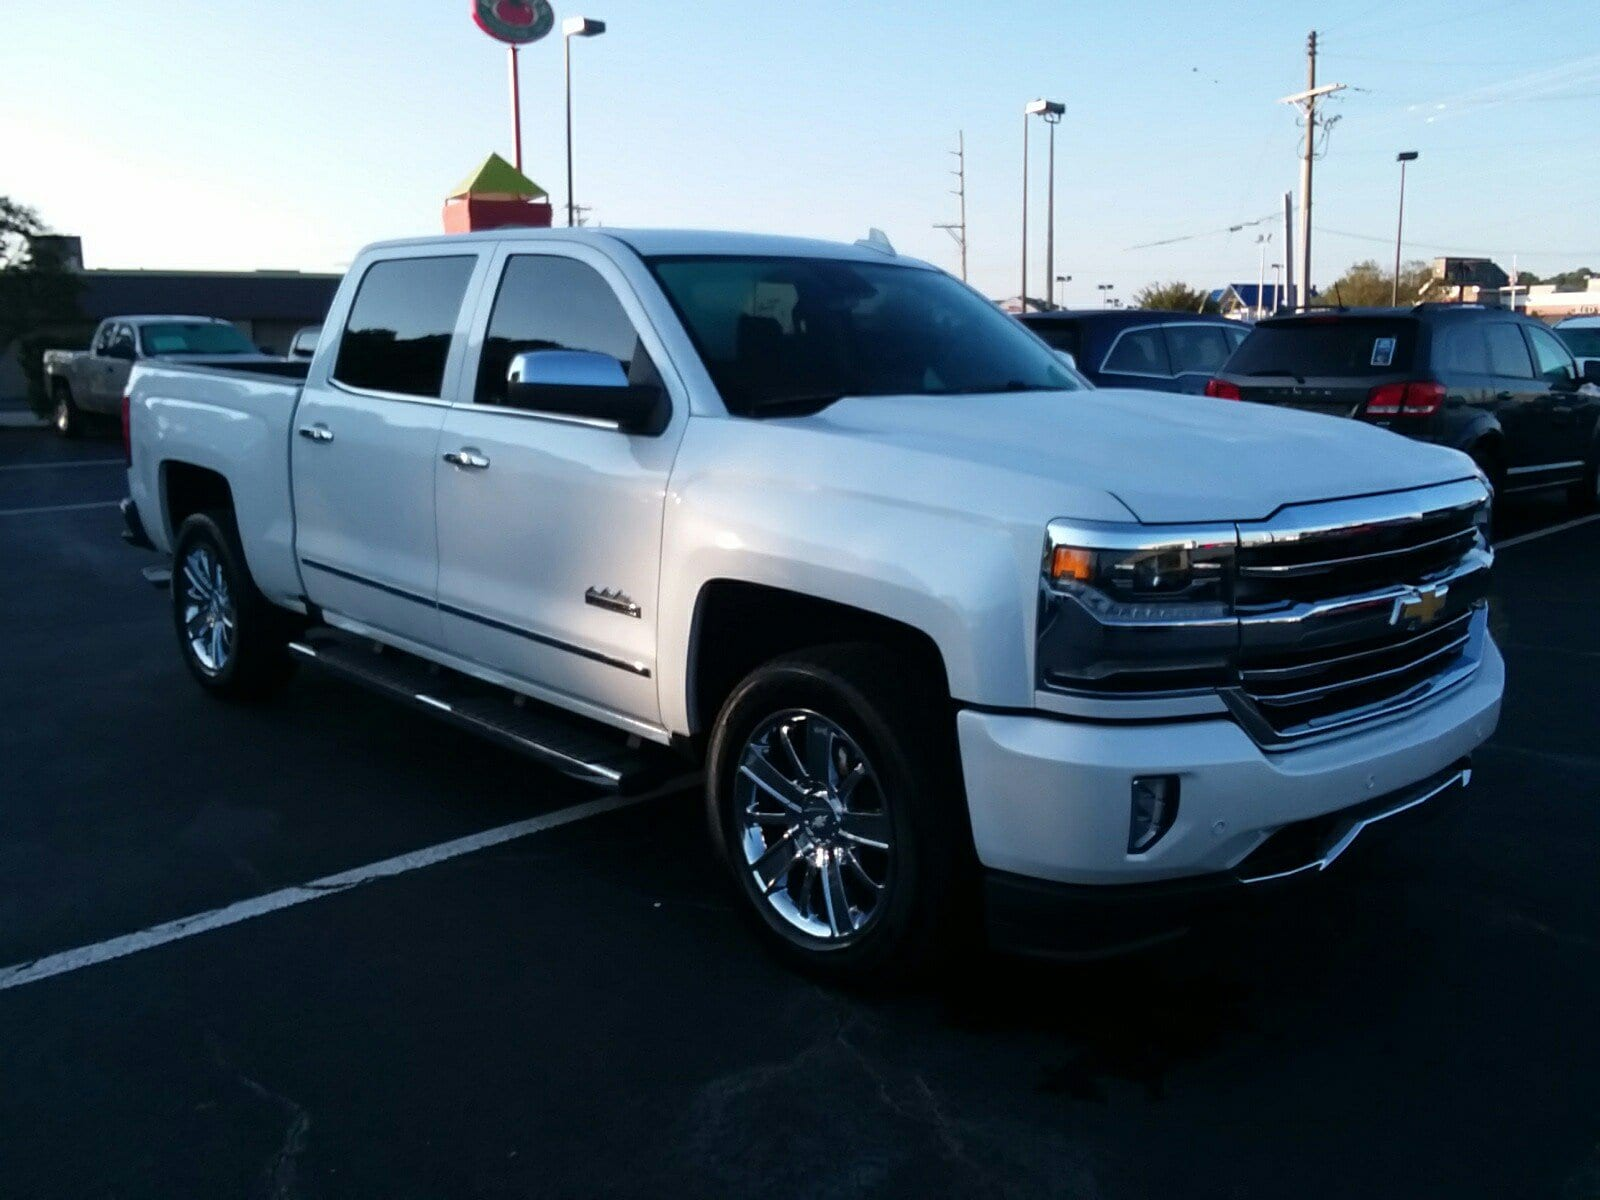 Used 2016 Chevrolet Silverado 1500 High Country For Sale in